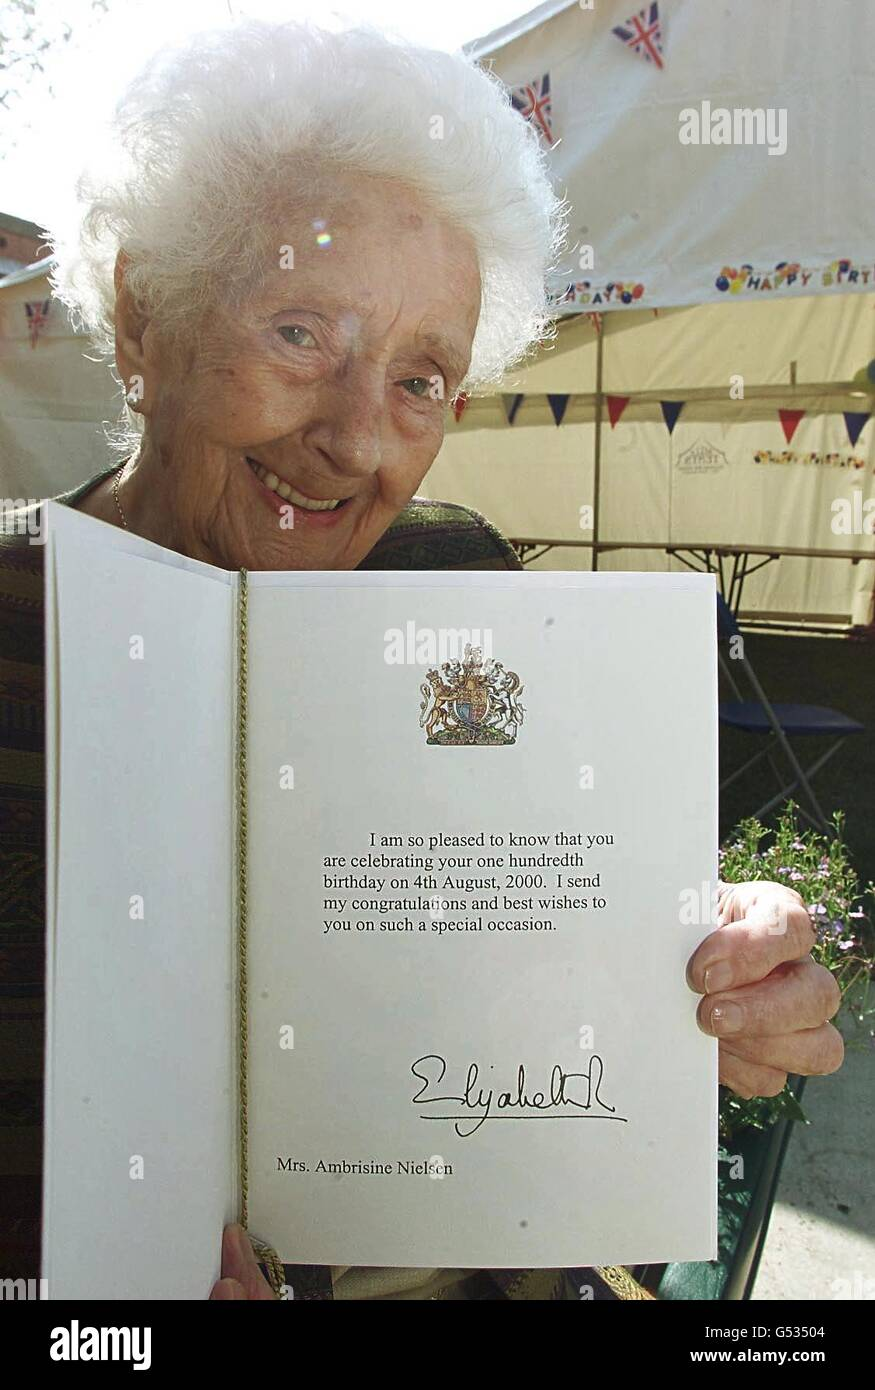 queen mother 100th birthday stock image